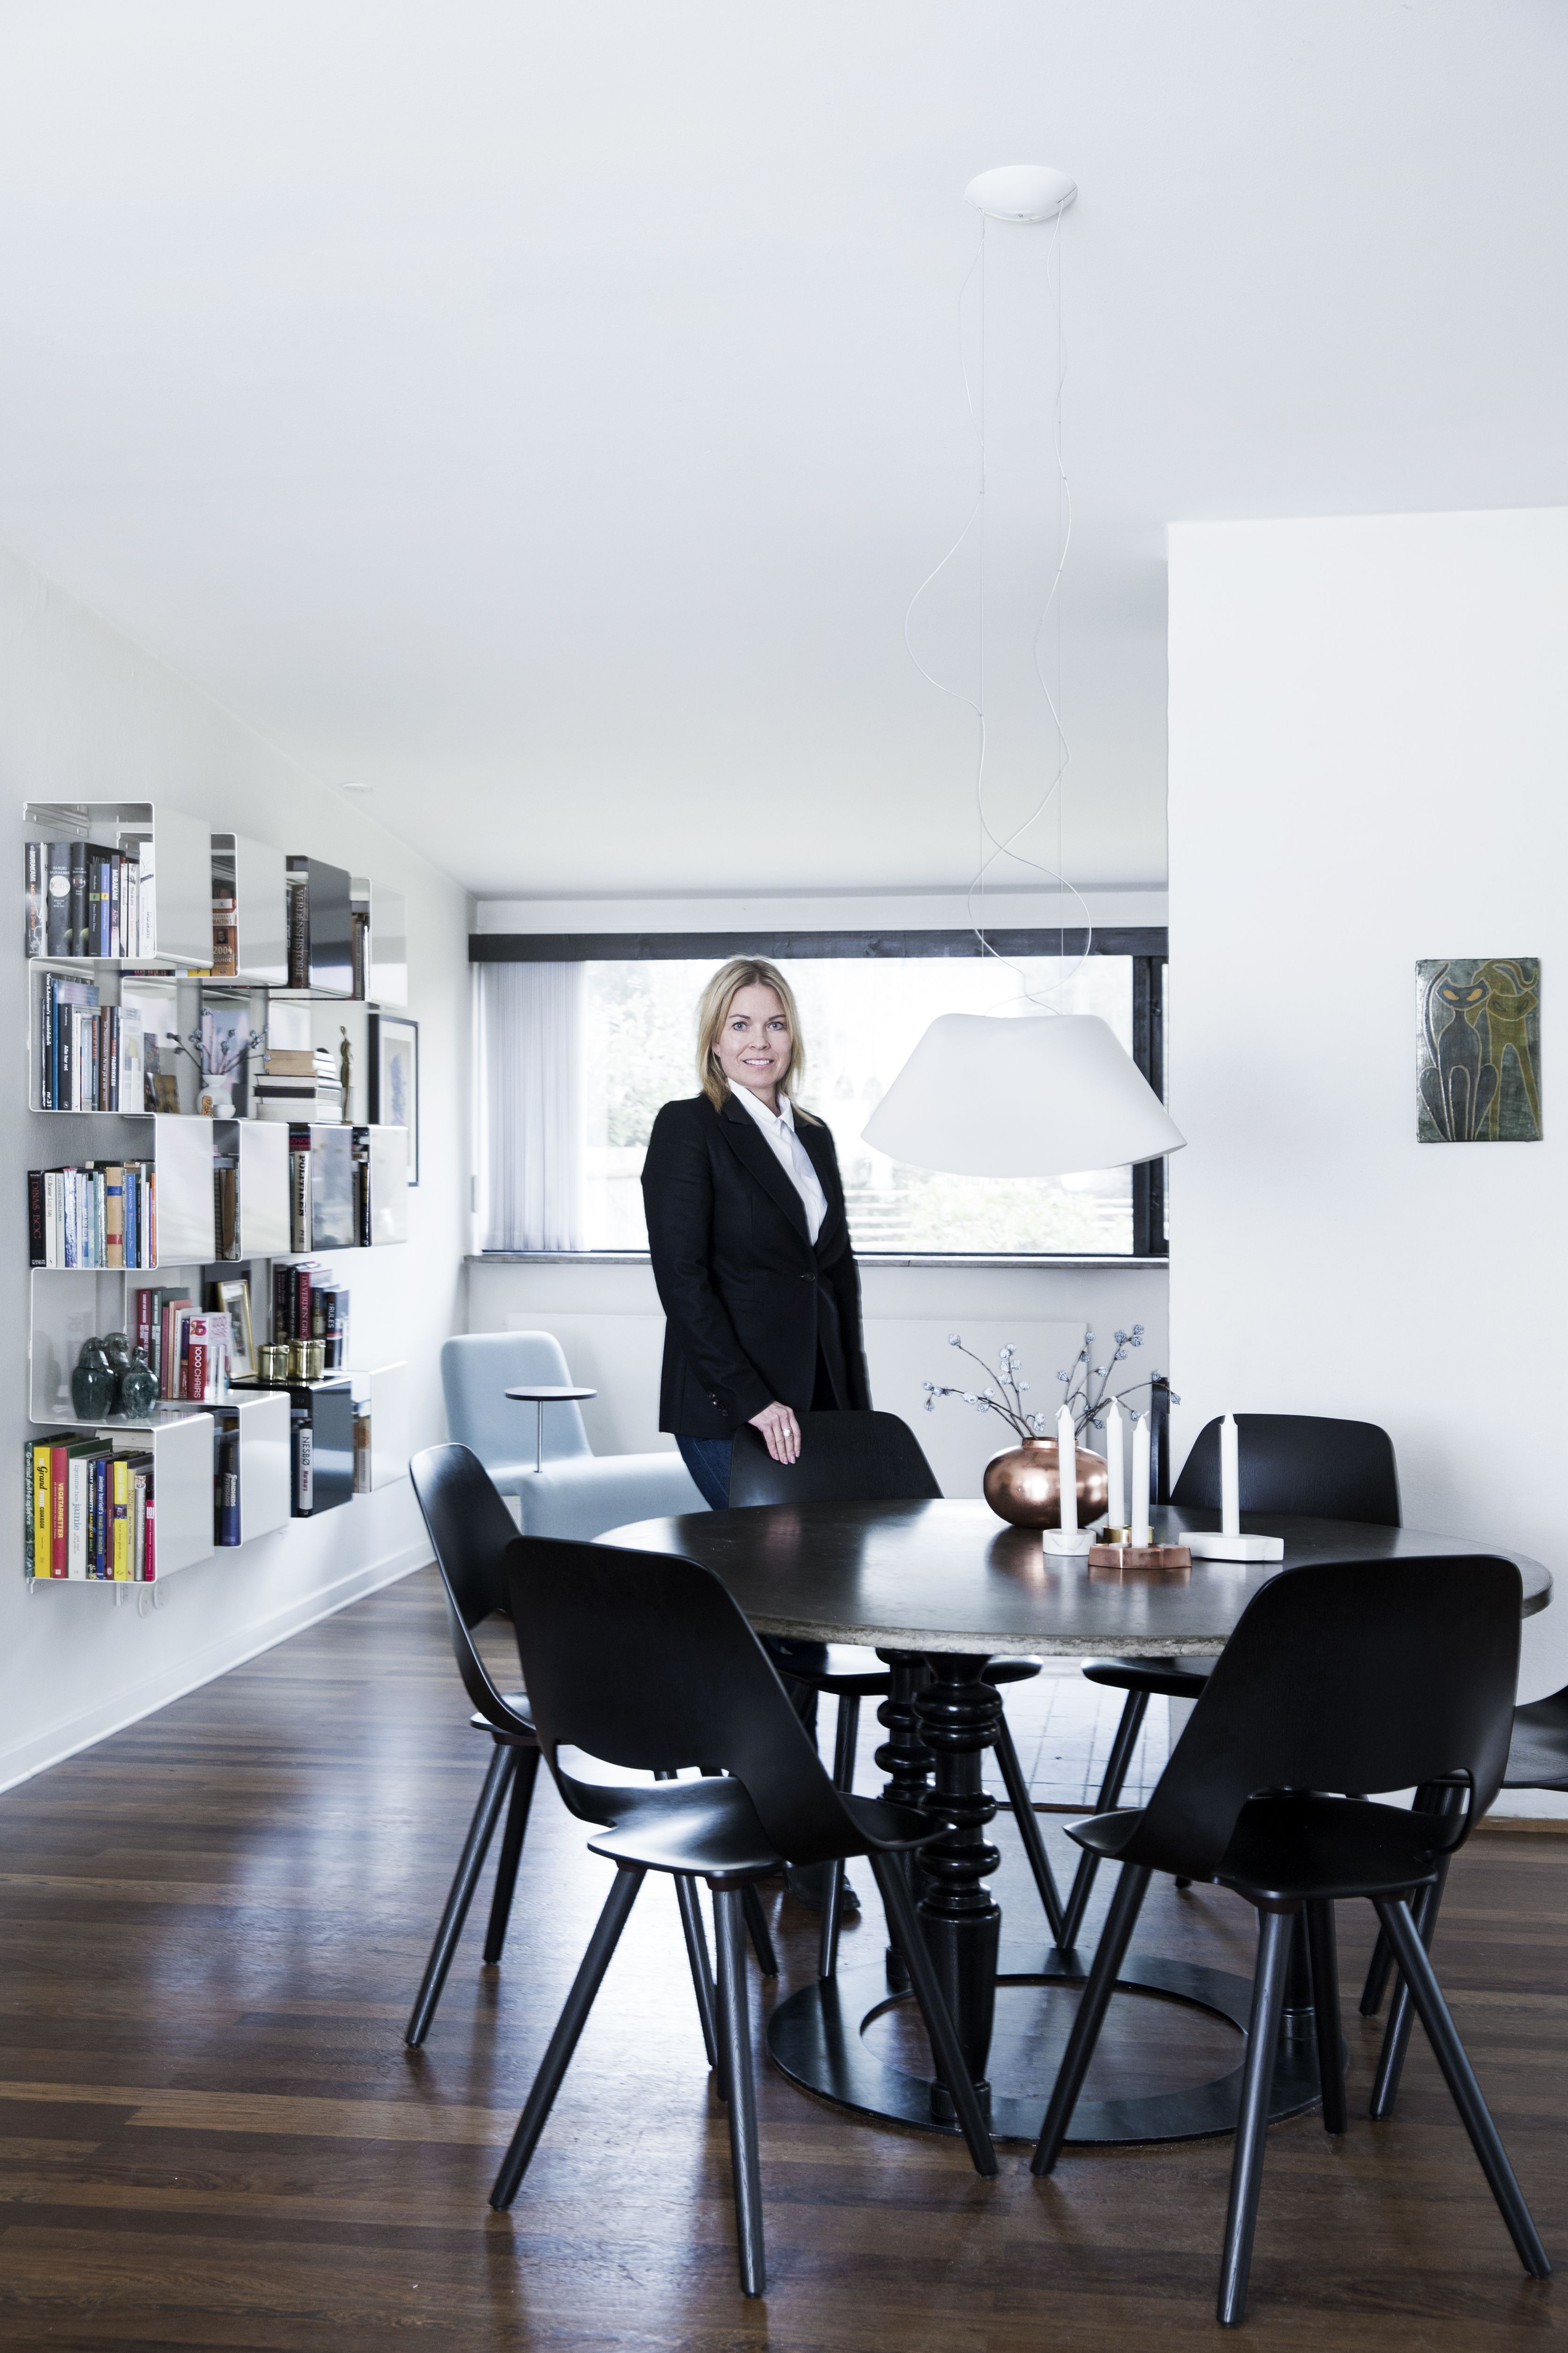 Anne Linde at home Photo by Tia Borgsmidt